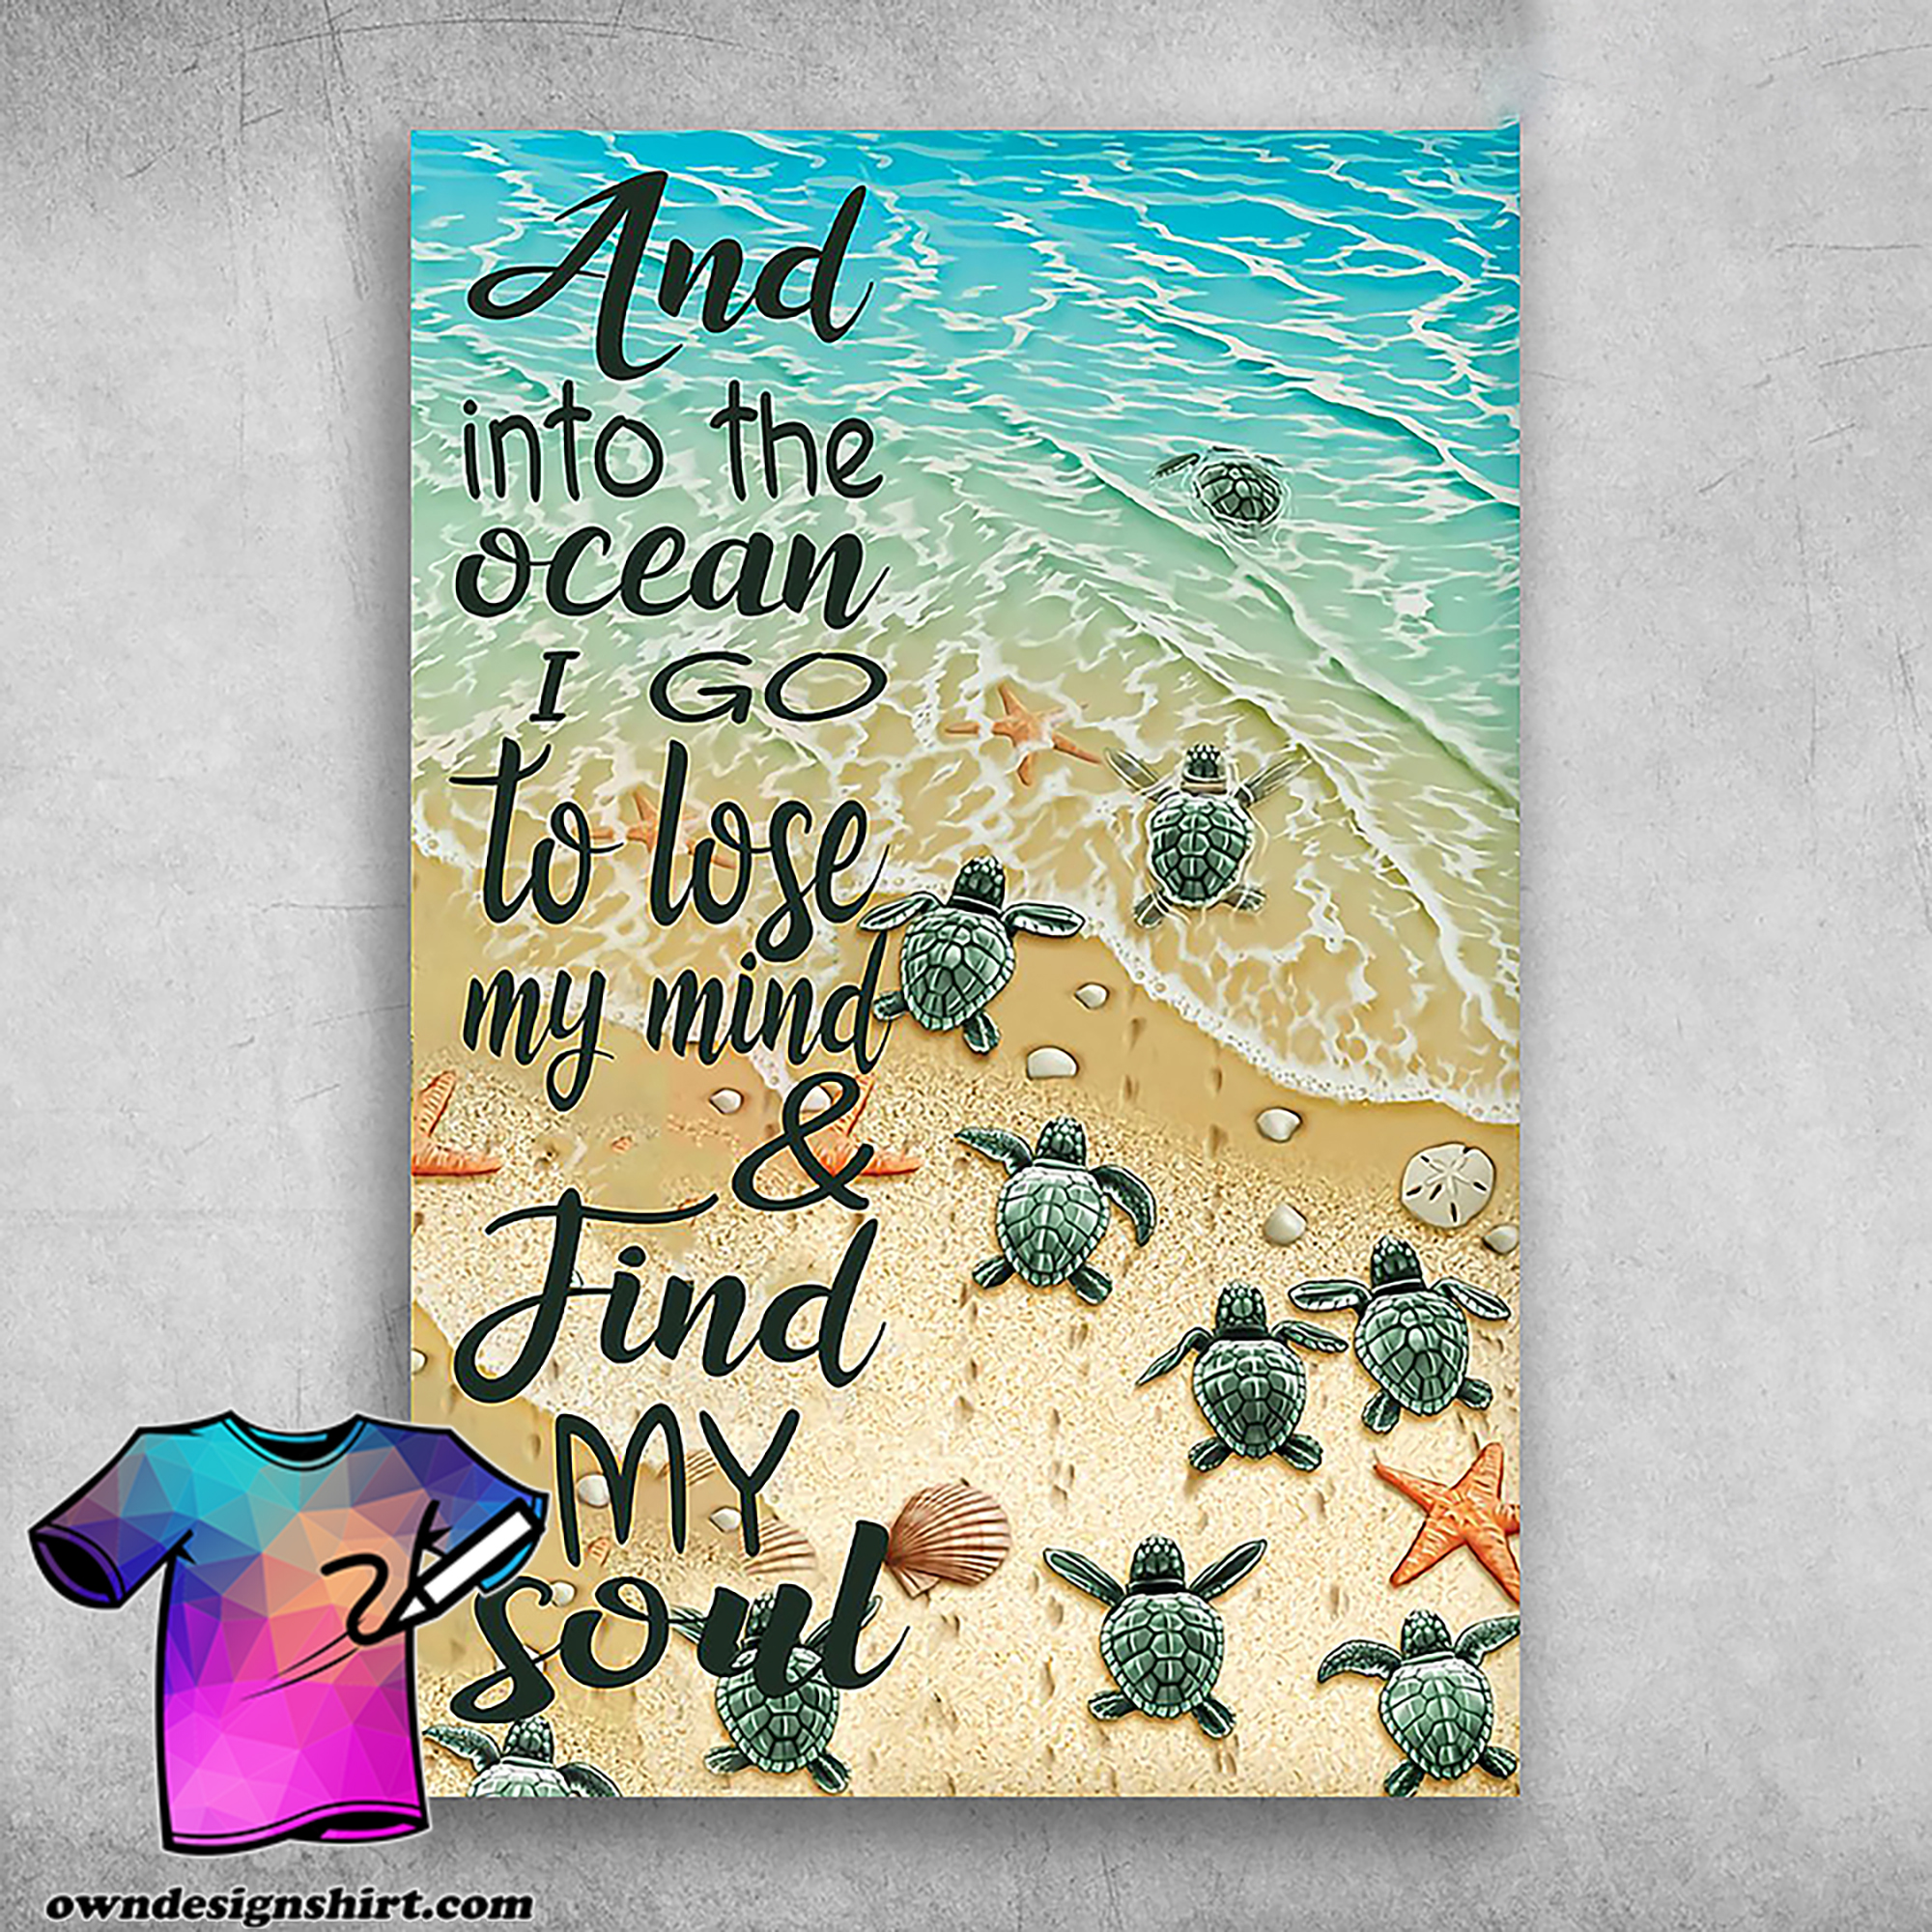 And into the ocean i go to lose my mind and find my soul turtle poster